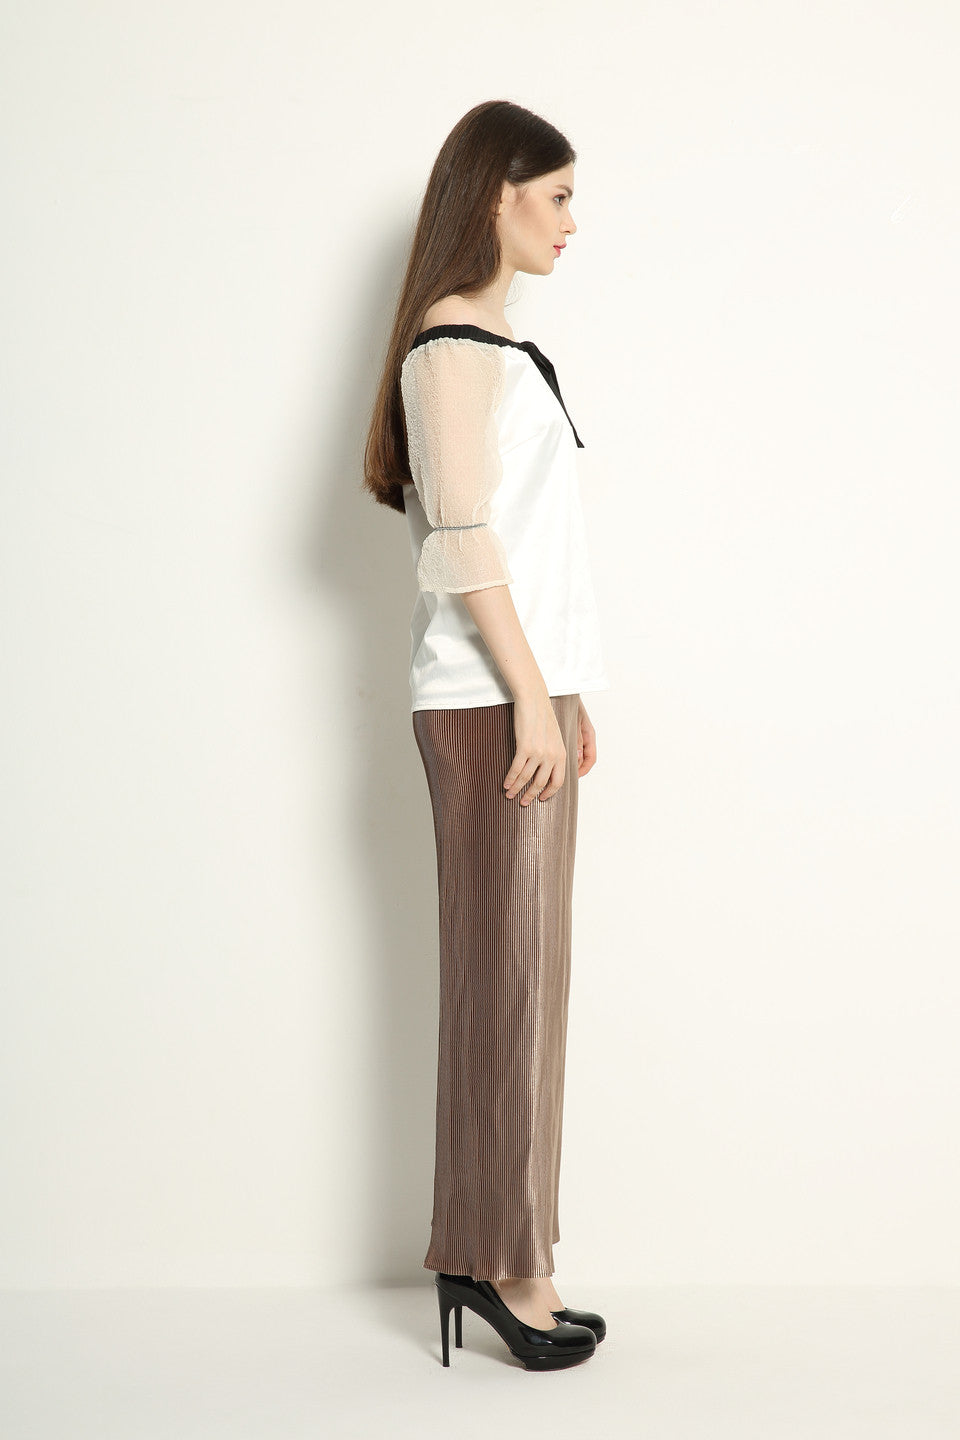 Metallic Pleat Trousers - GlanceZ   - 4